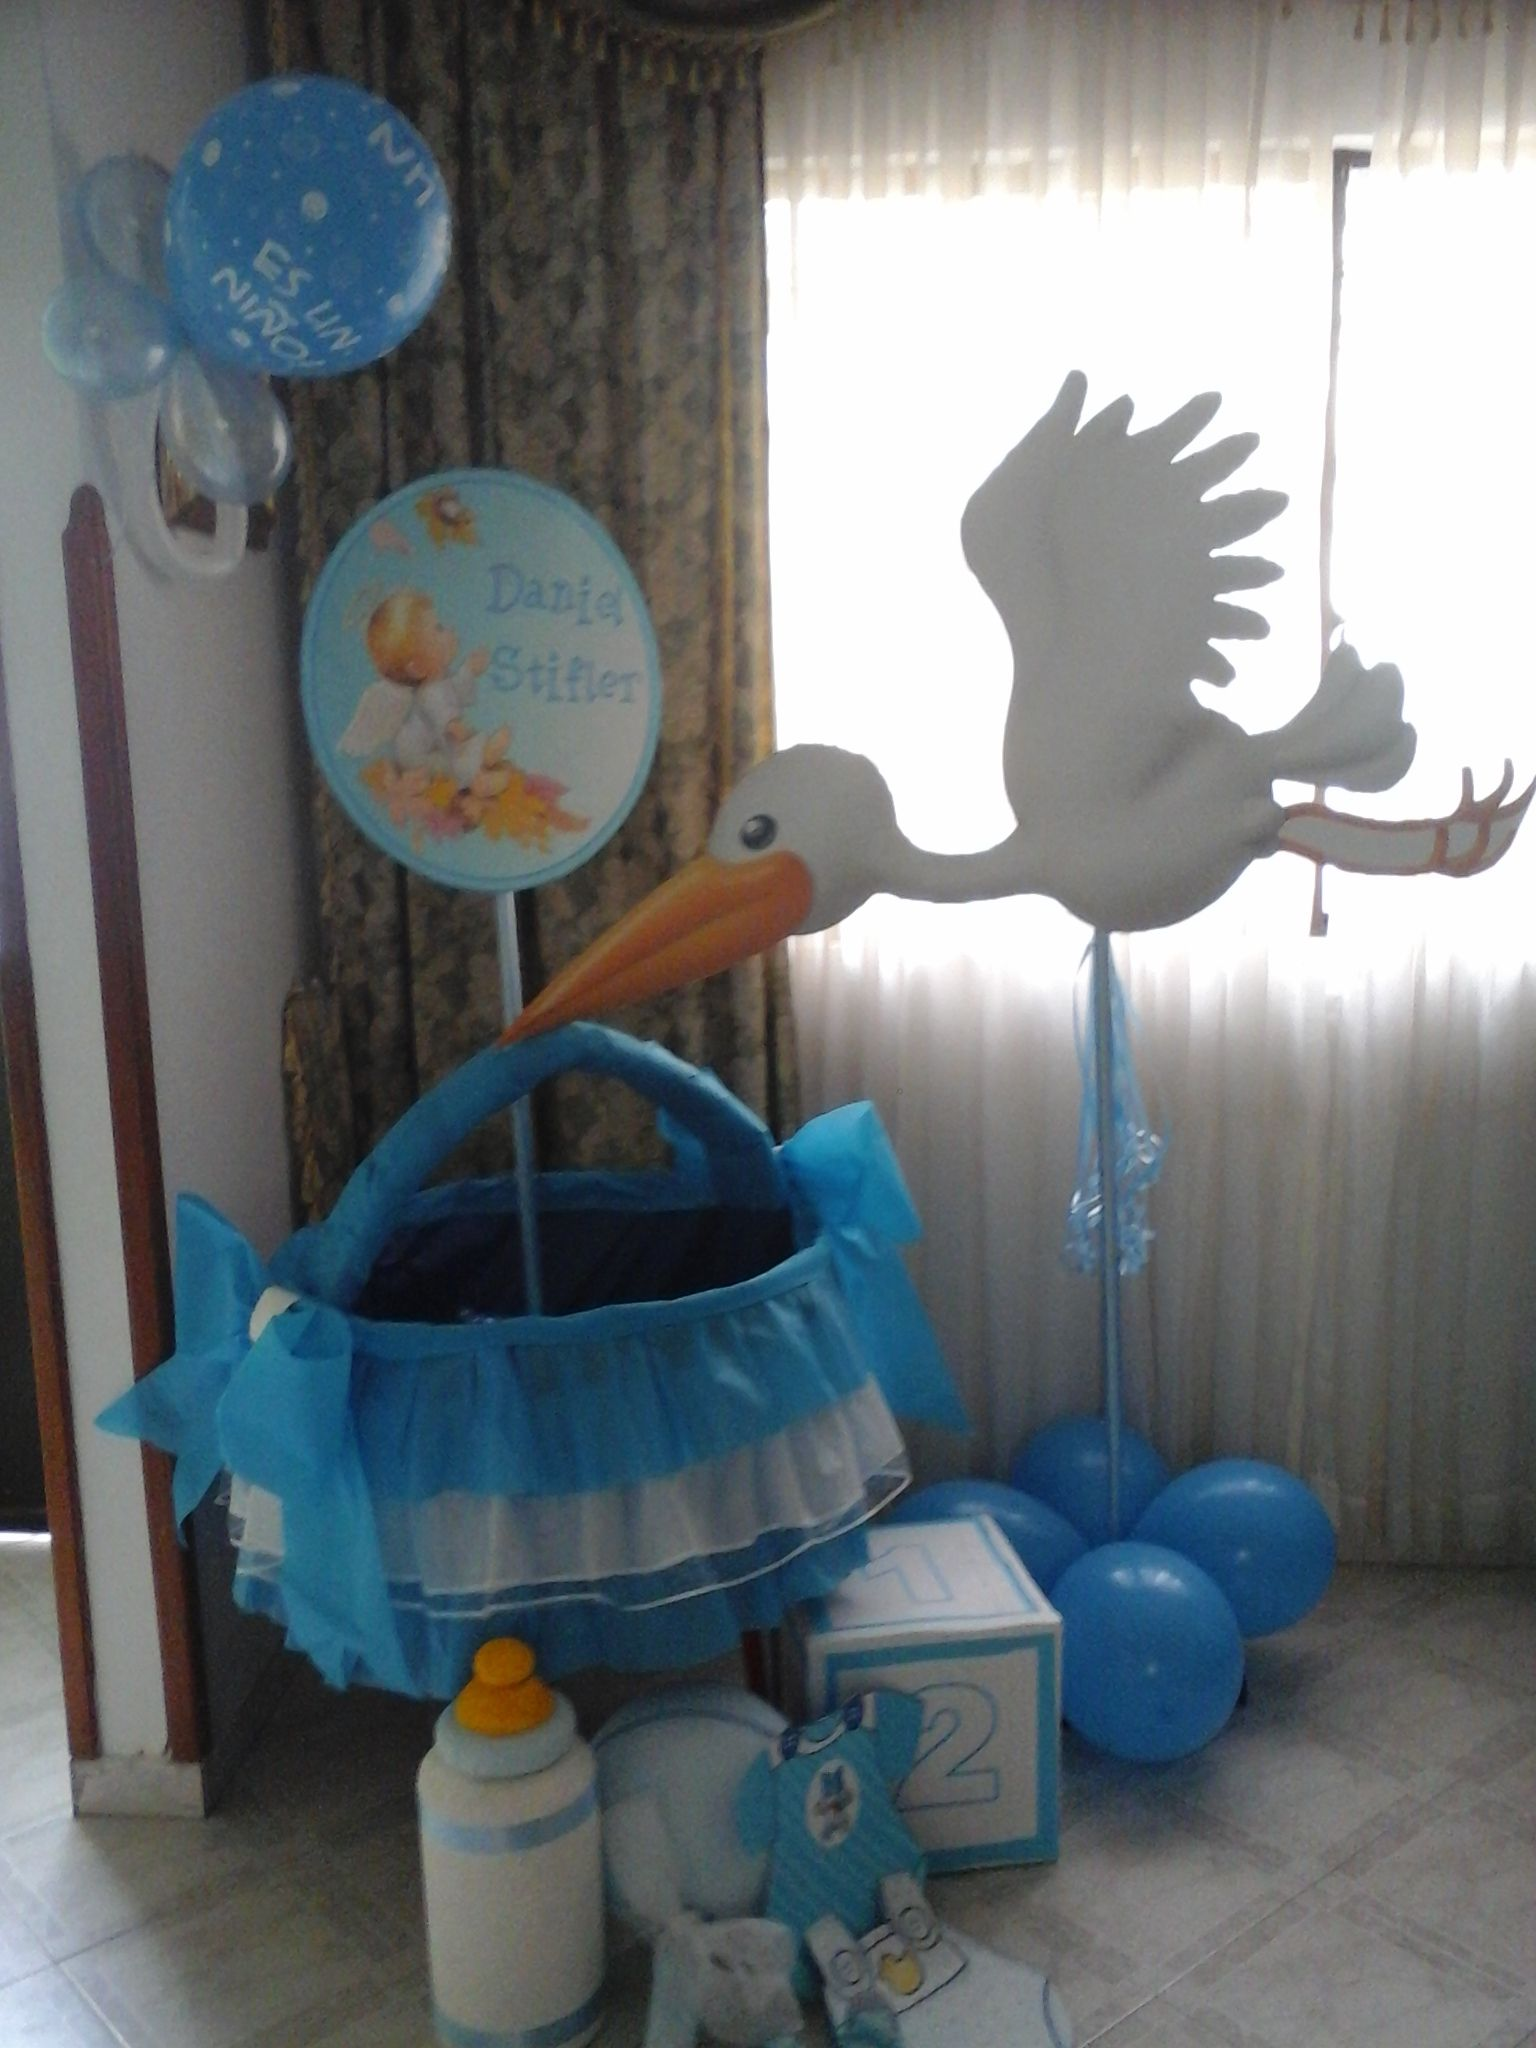 Cuna Para Regalos De Baby Shower Nino.Caja De Regalos Baby Shower Regalo Baby Shower Cajitas